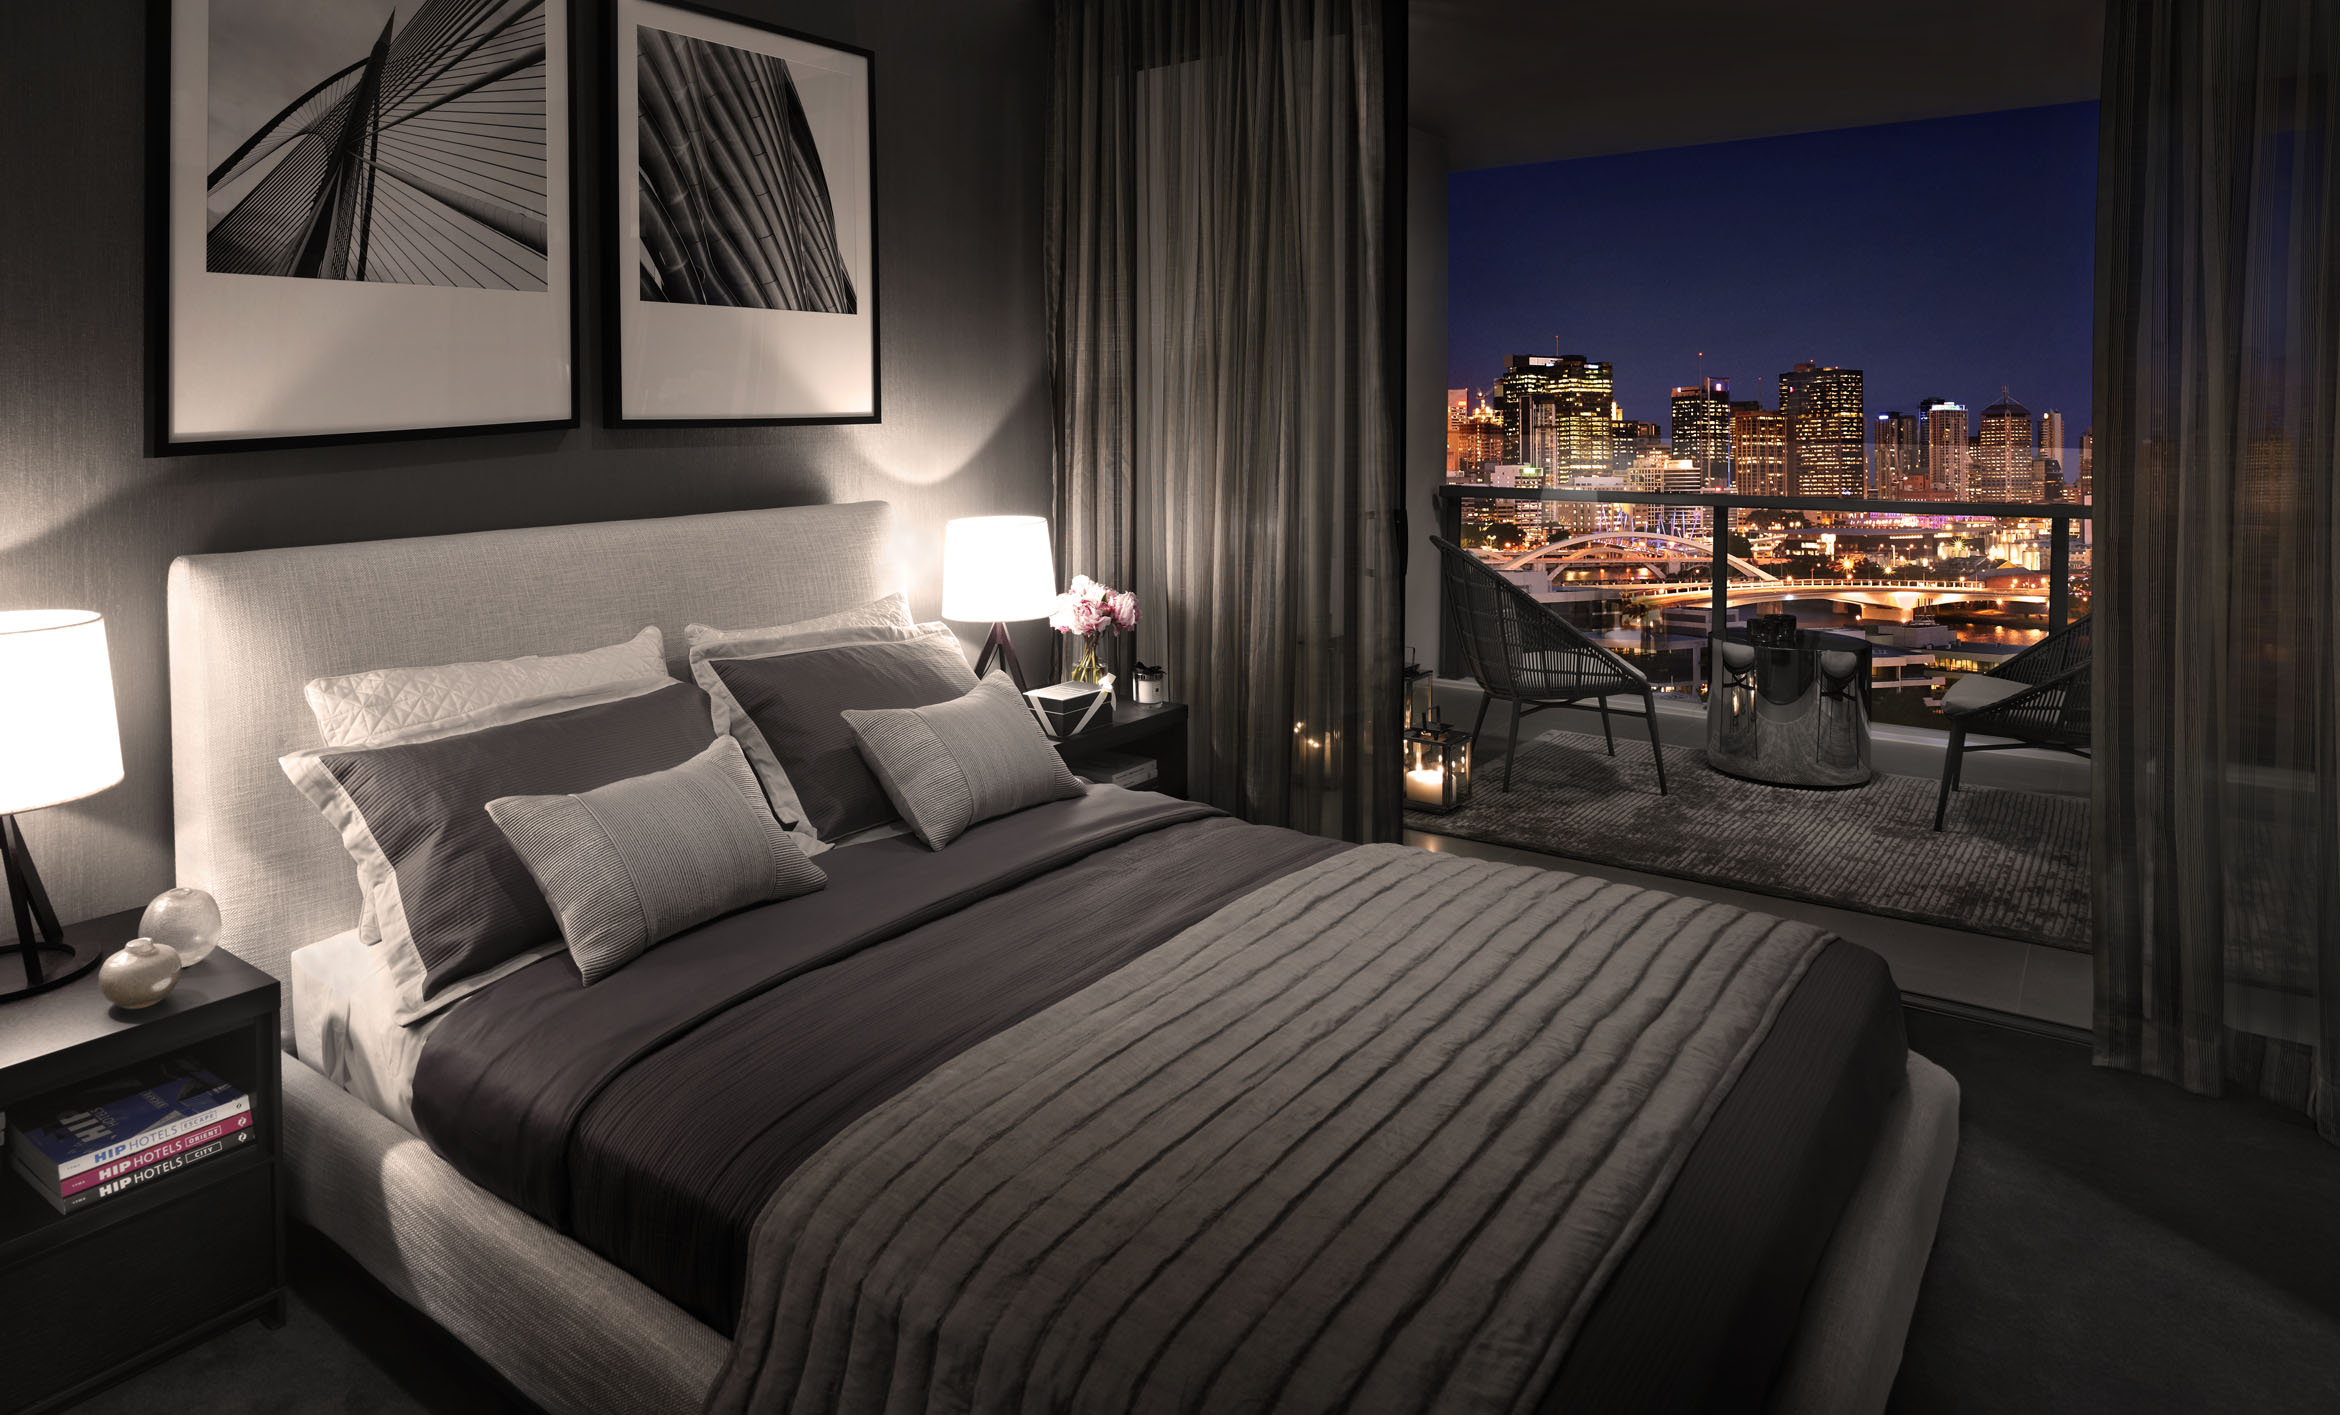 Luxury Bedroom With City Night Views